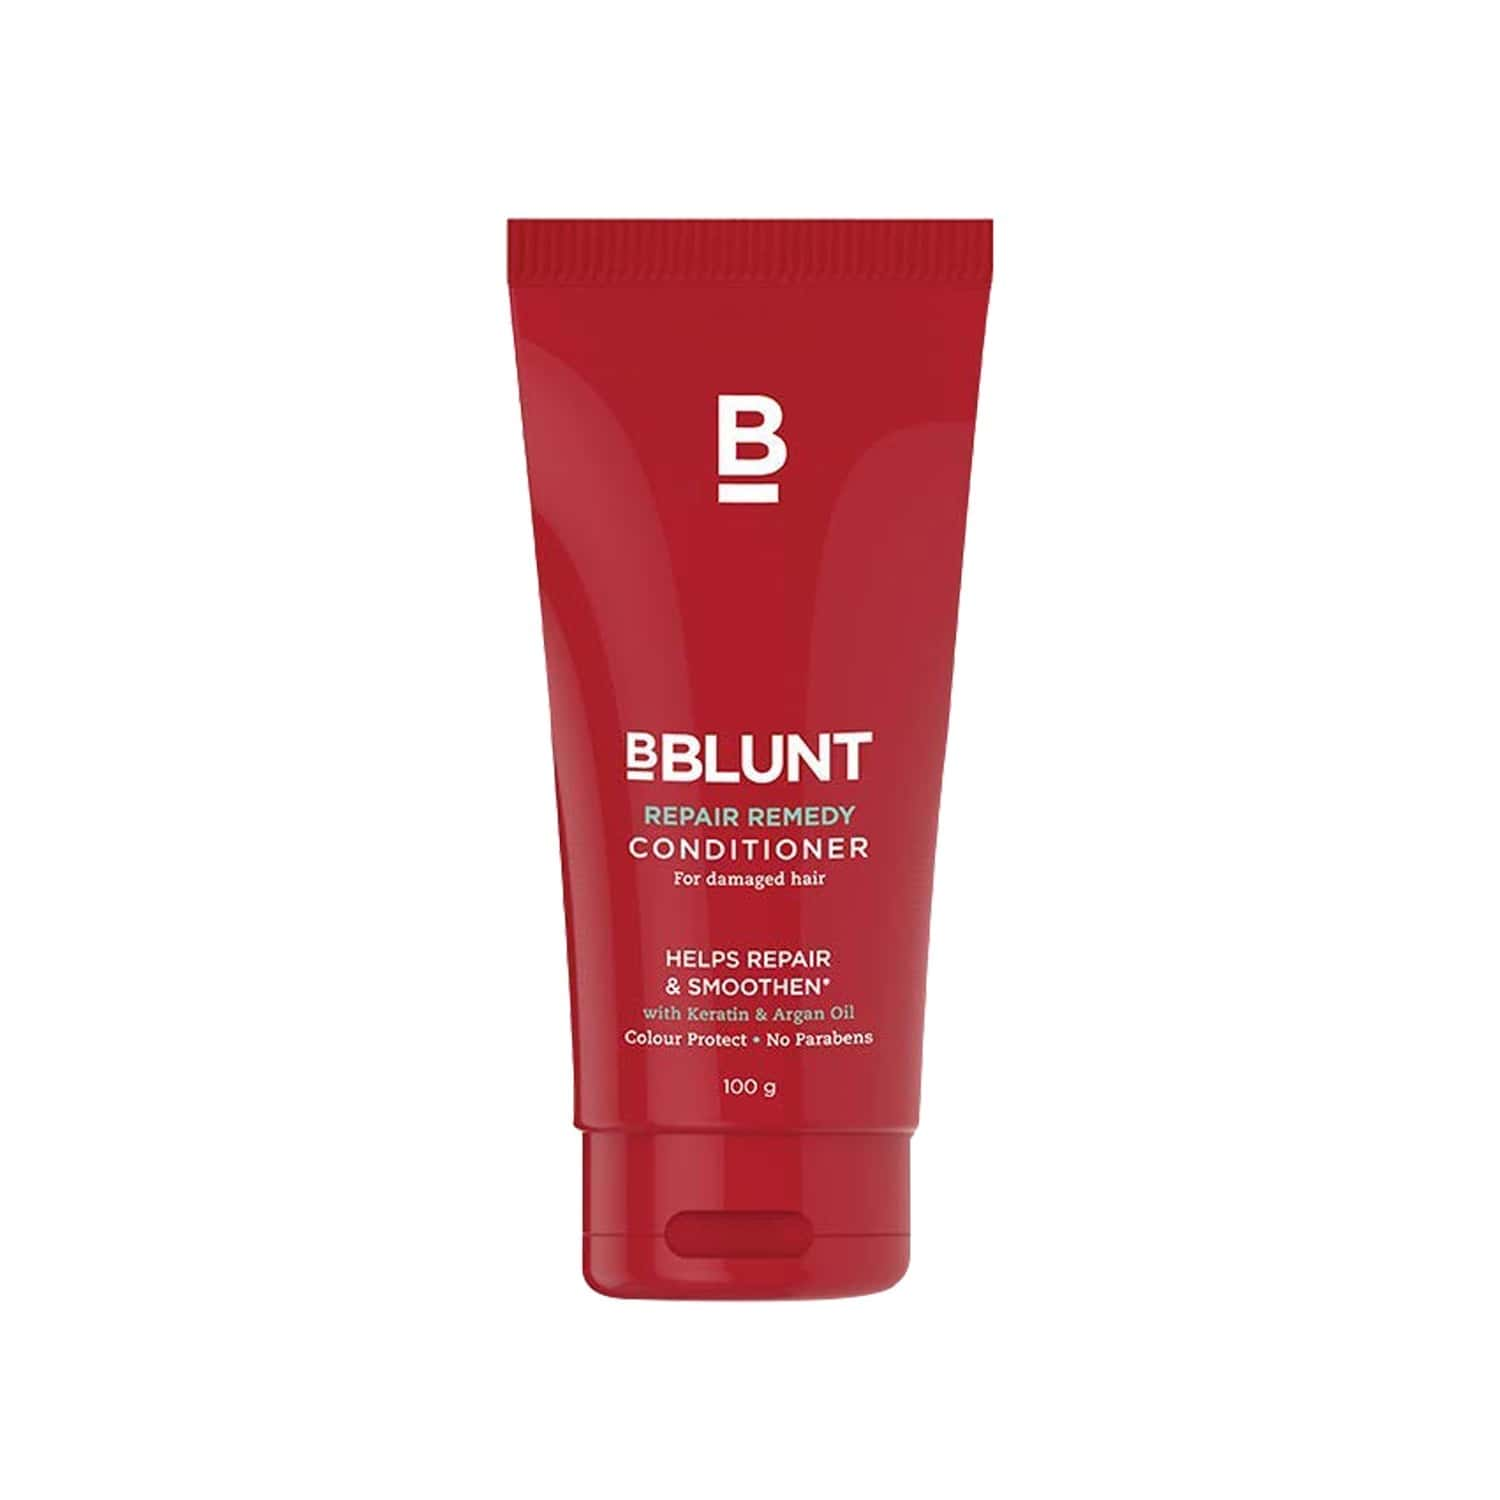 Bblunt Repair Remedy Conditioner For Damaged Hair - 100 Gm